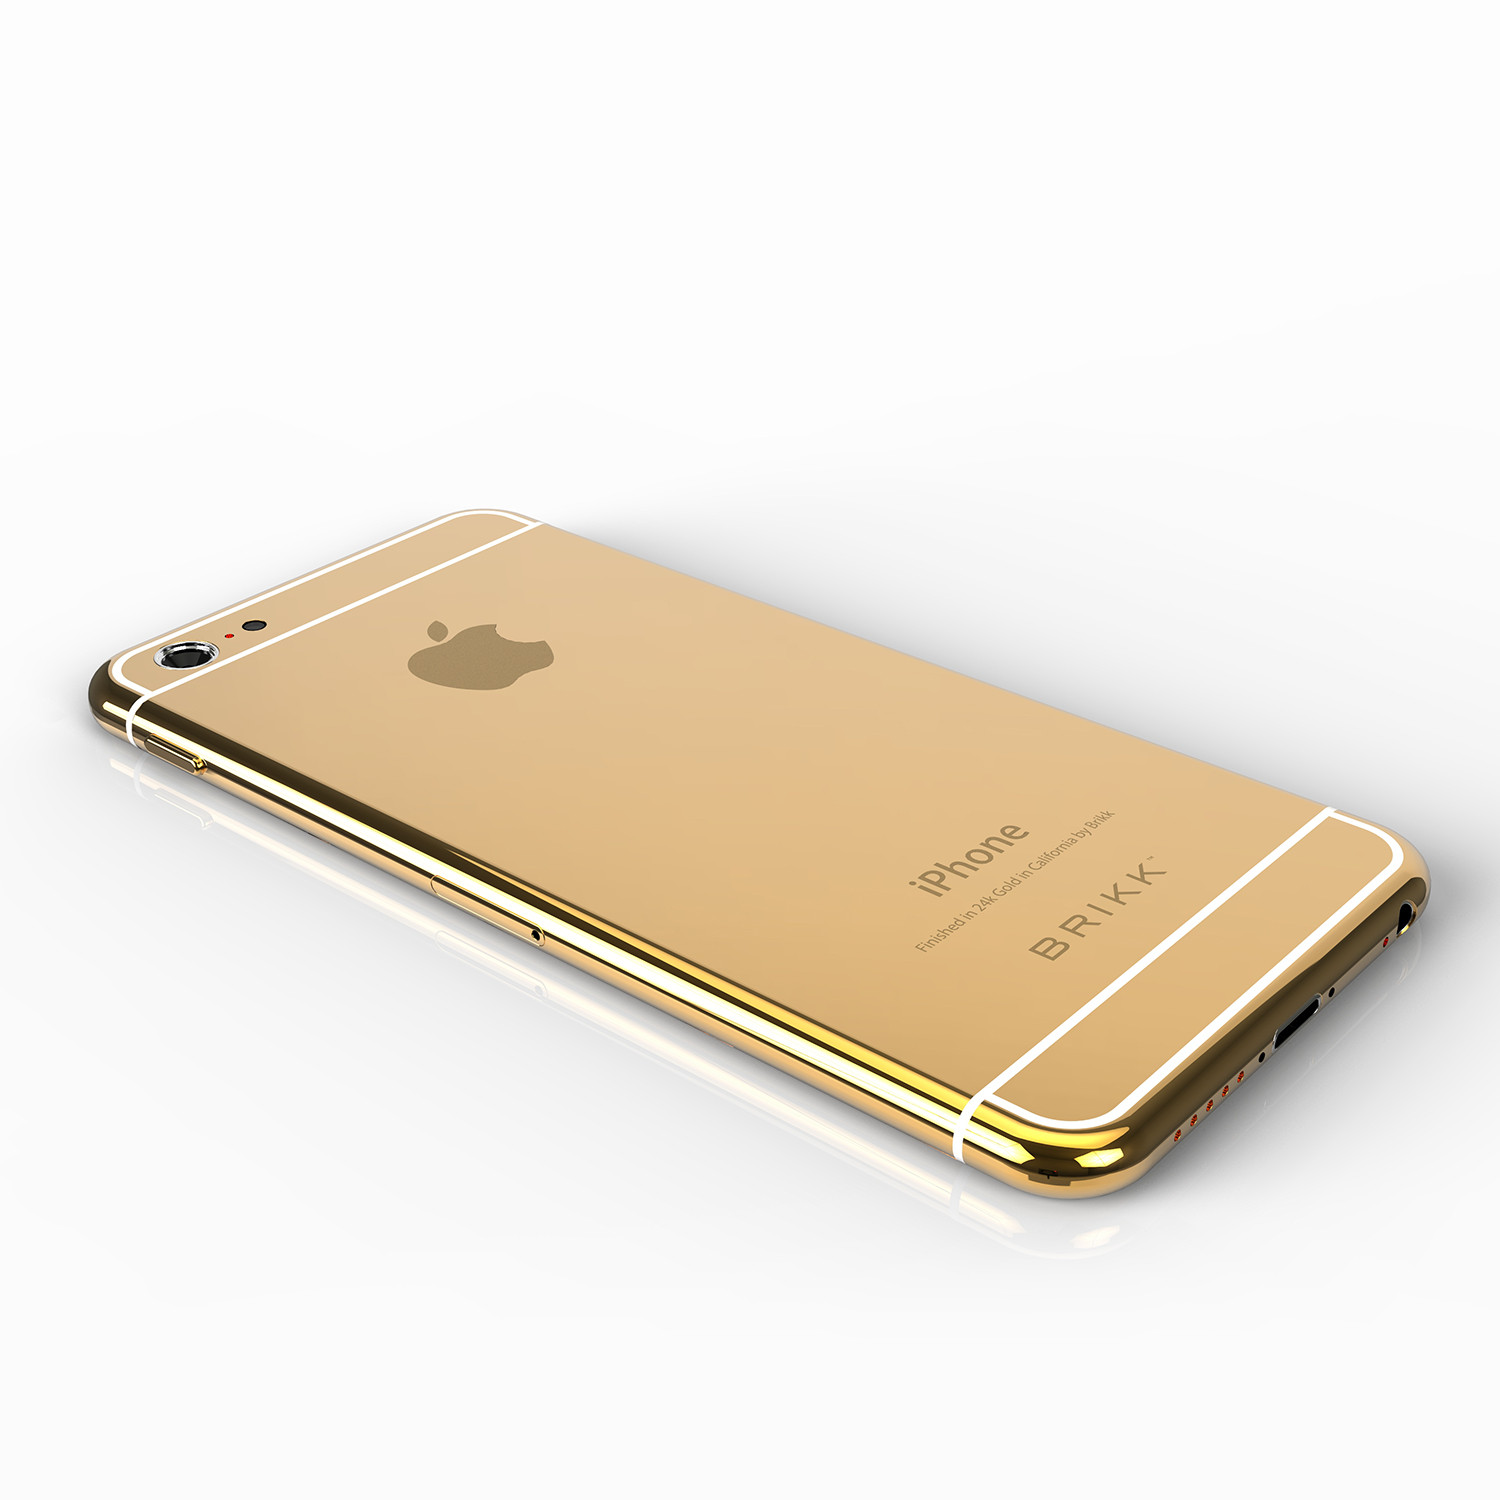 lux iphone 6 plus yellow gold at t or t mobile white brikk touch of modern. Black Bedroom Furniture Sets. Home Design Ideas